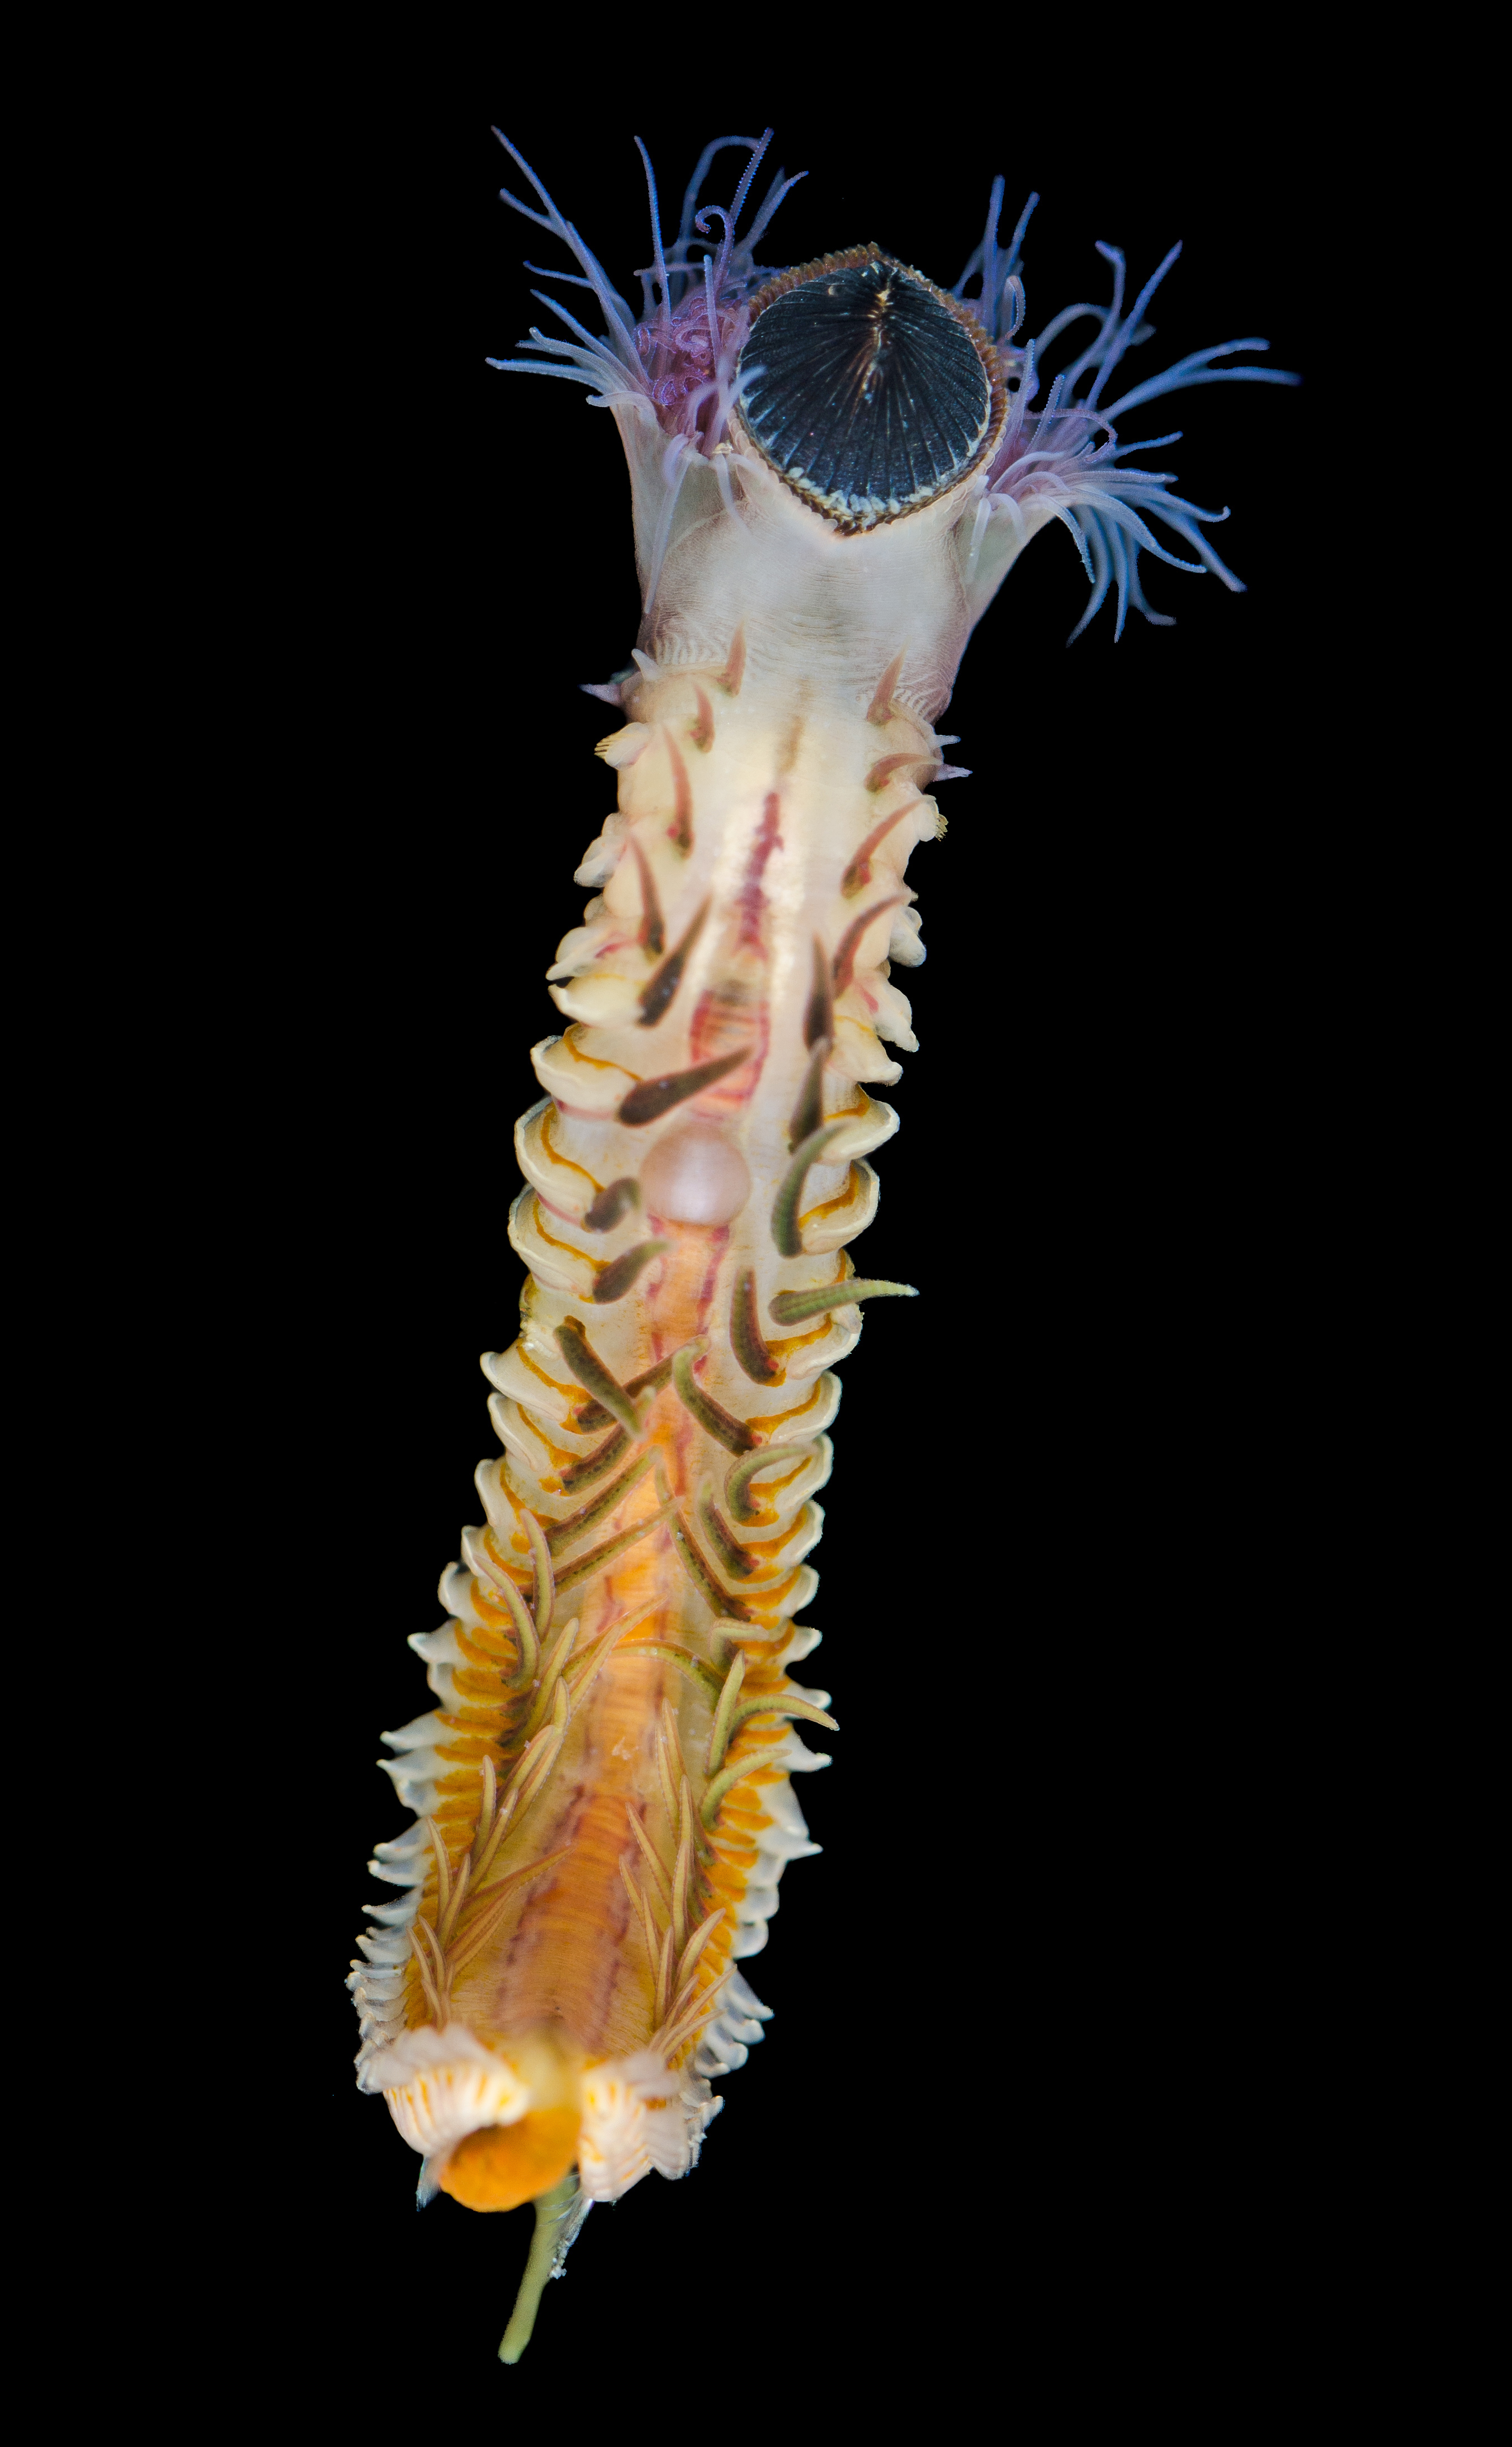 A spiky white and yellow worm with purple tentacles on a black background.